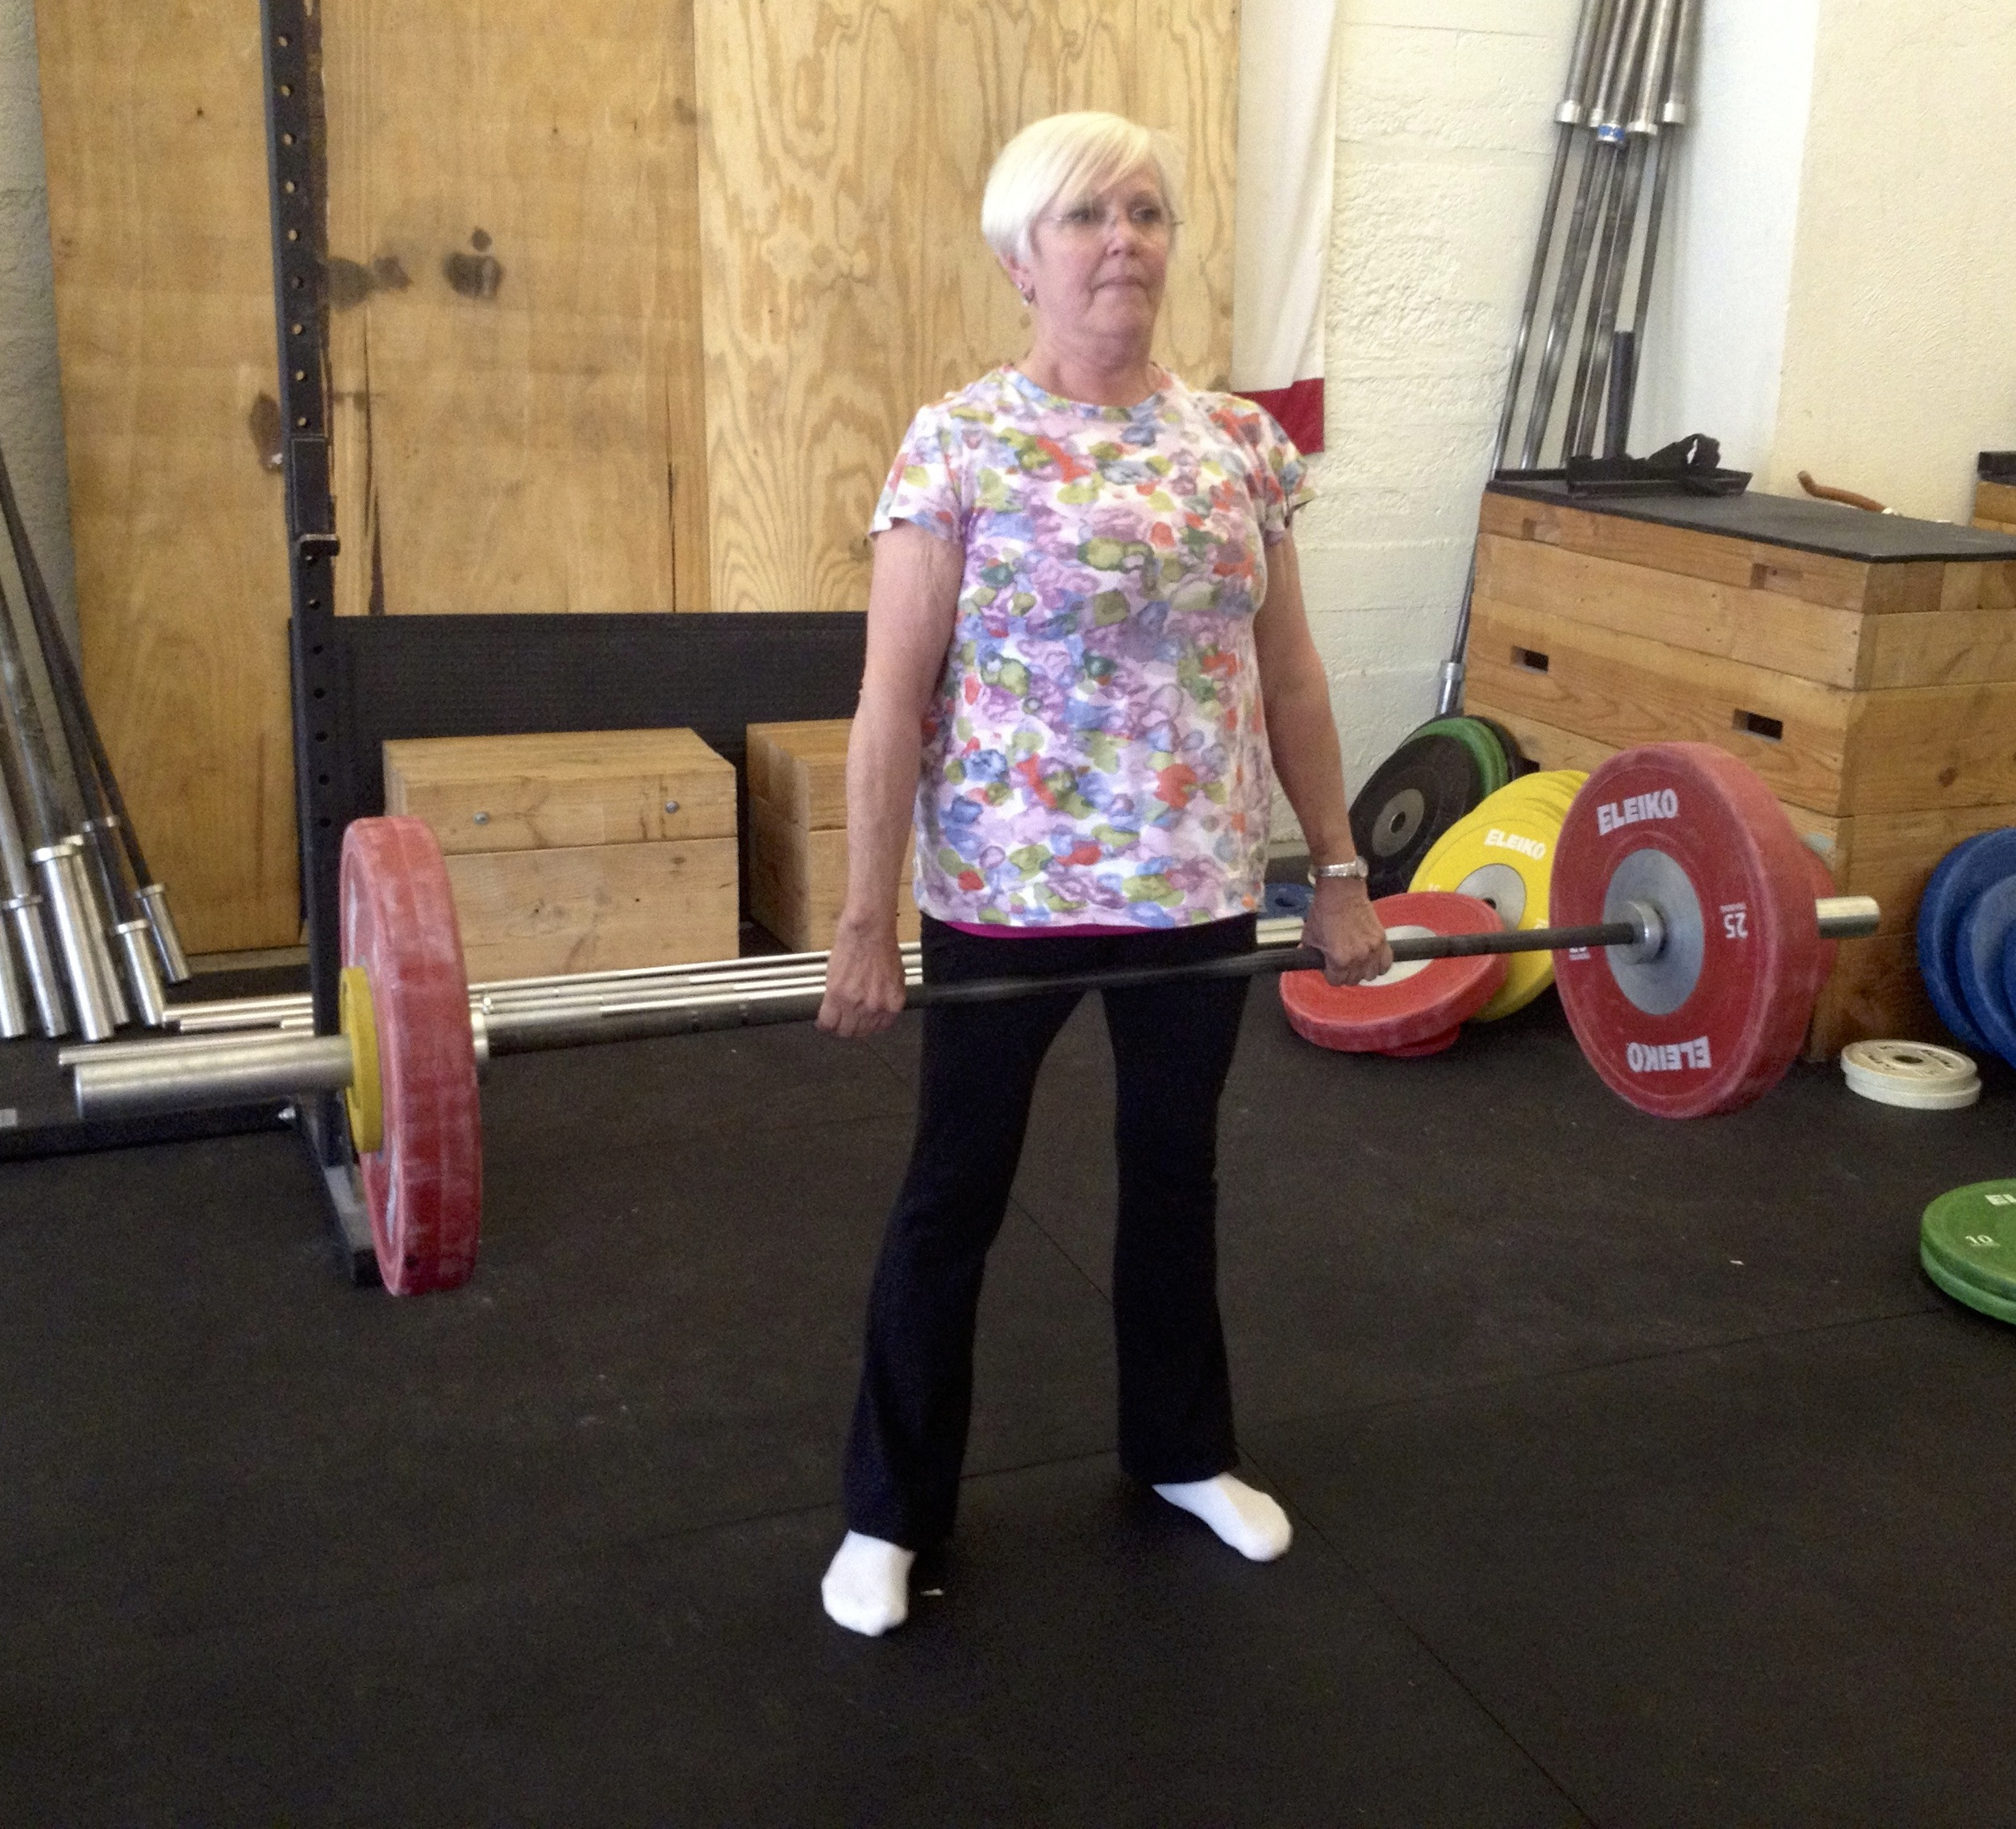 If my mom can deadlift at 70... why can't yours?